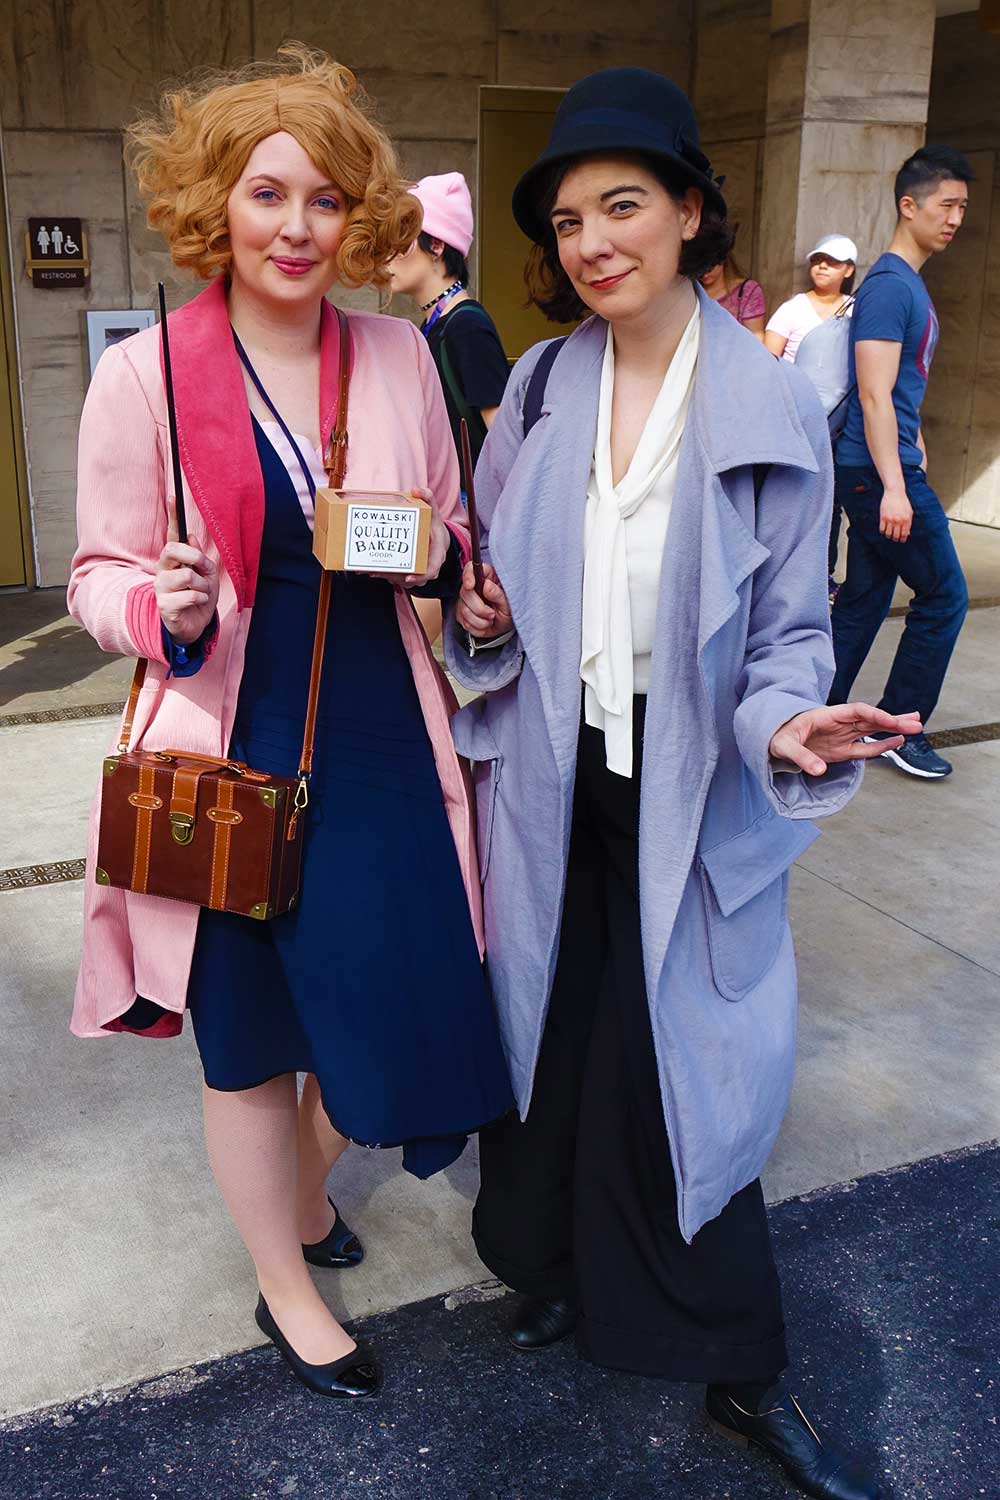 A Celebration of Harry Potter - Fantastic Beasts Costumes